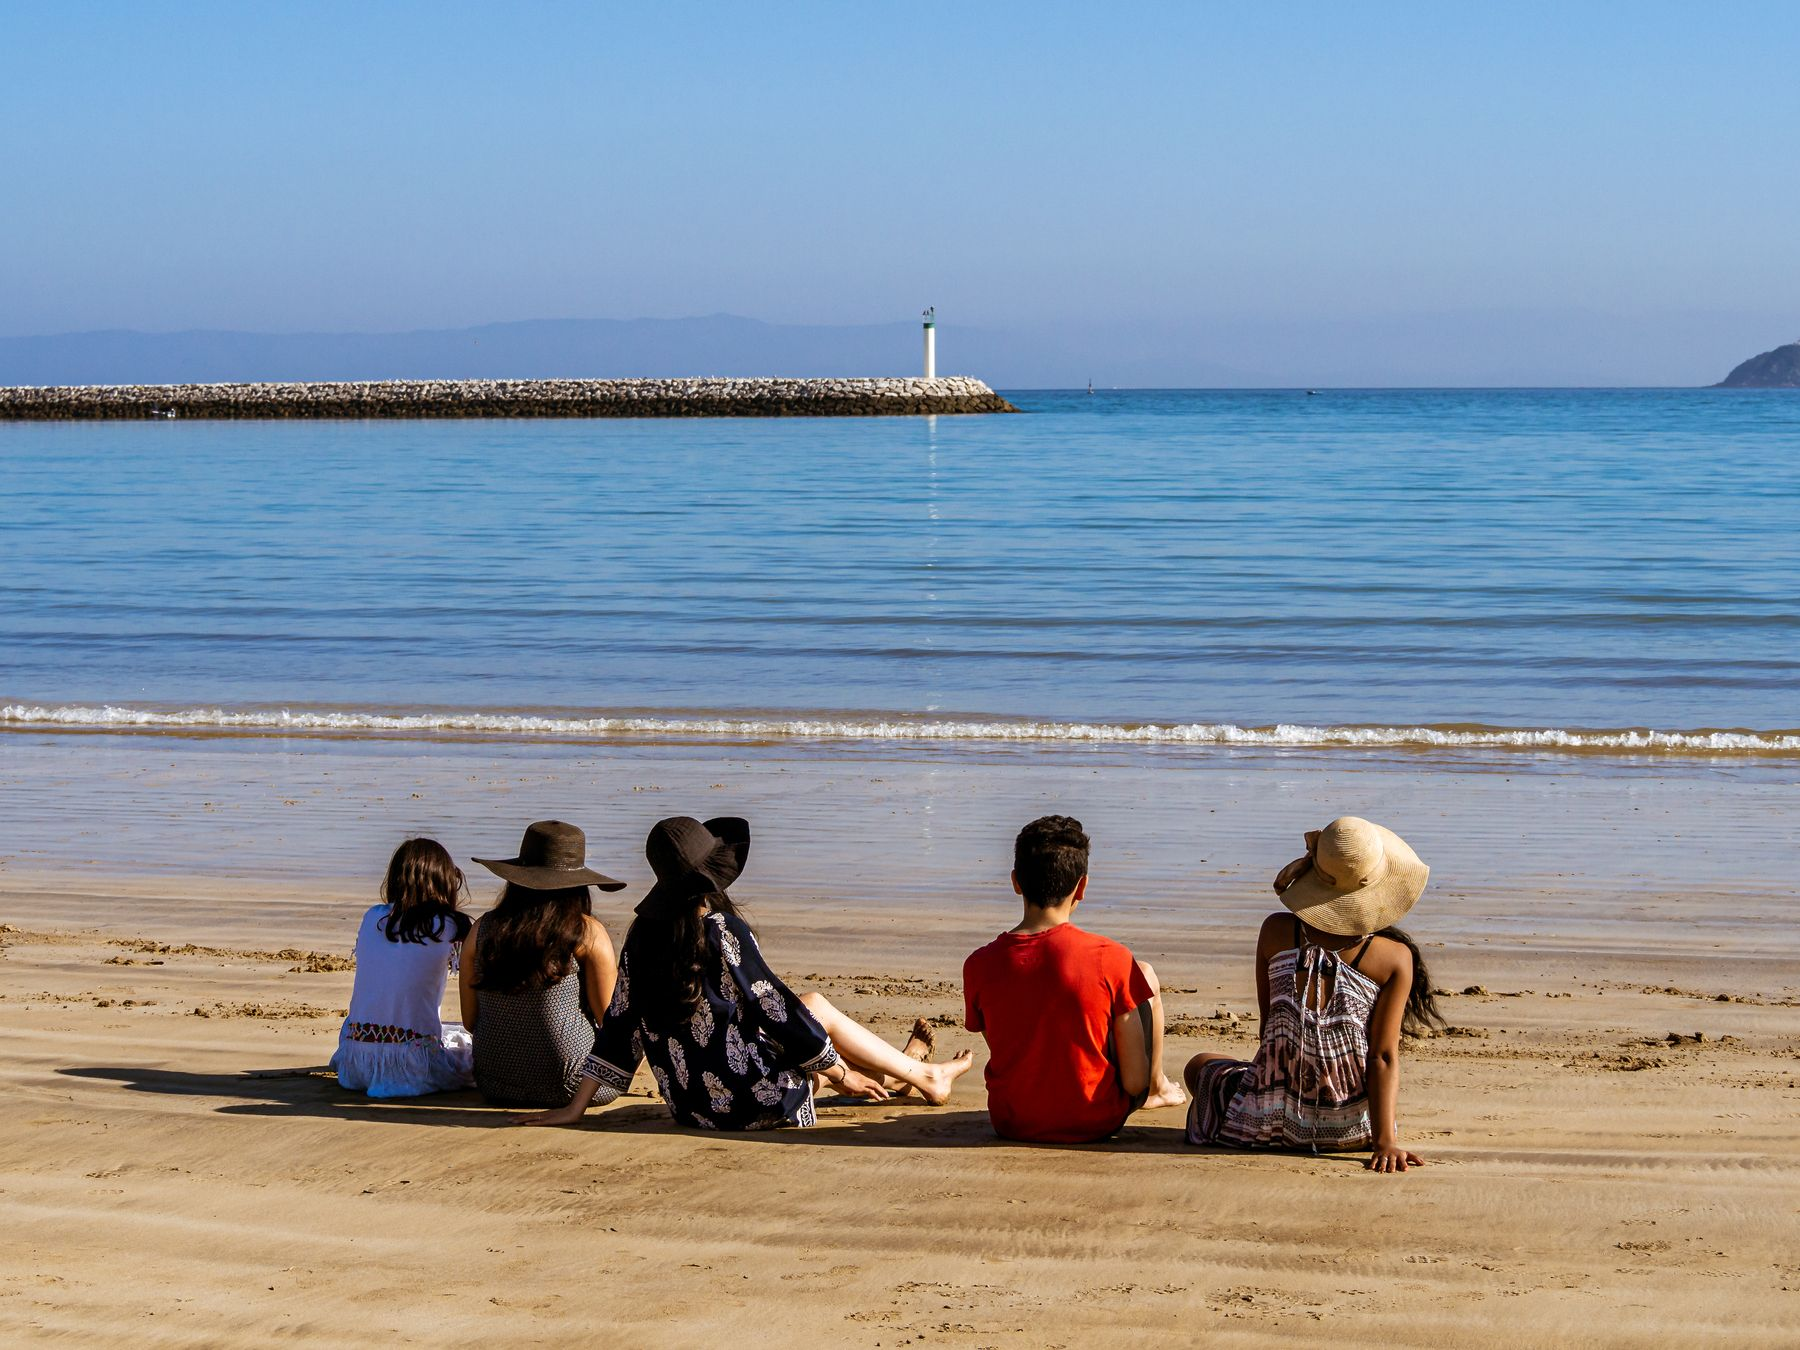 Rear view of people sitting on the municipal beach of Tangier in northern Morocco